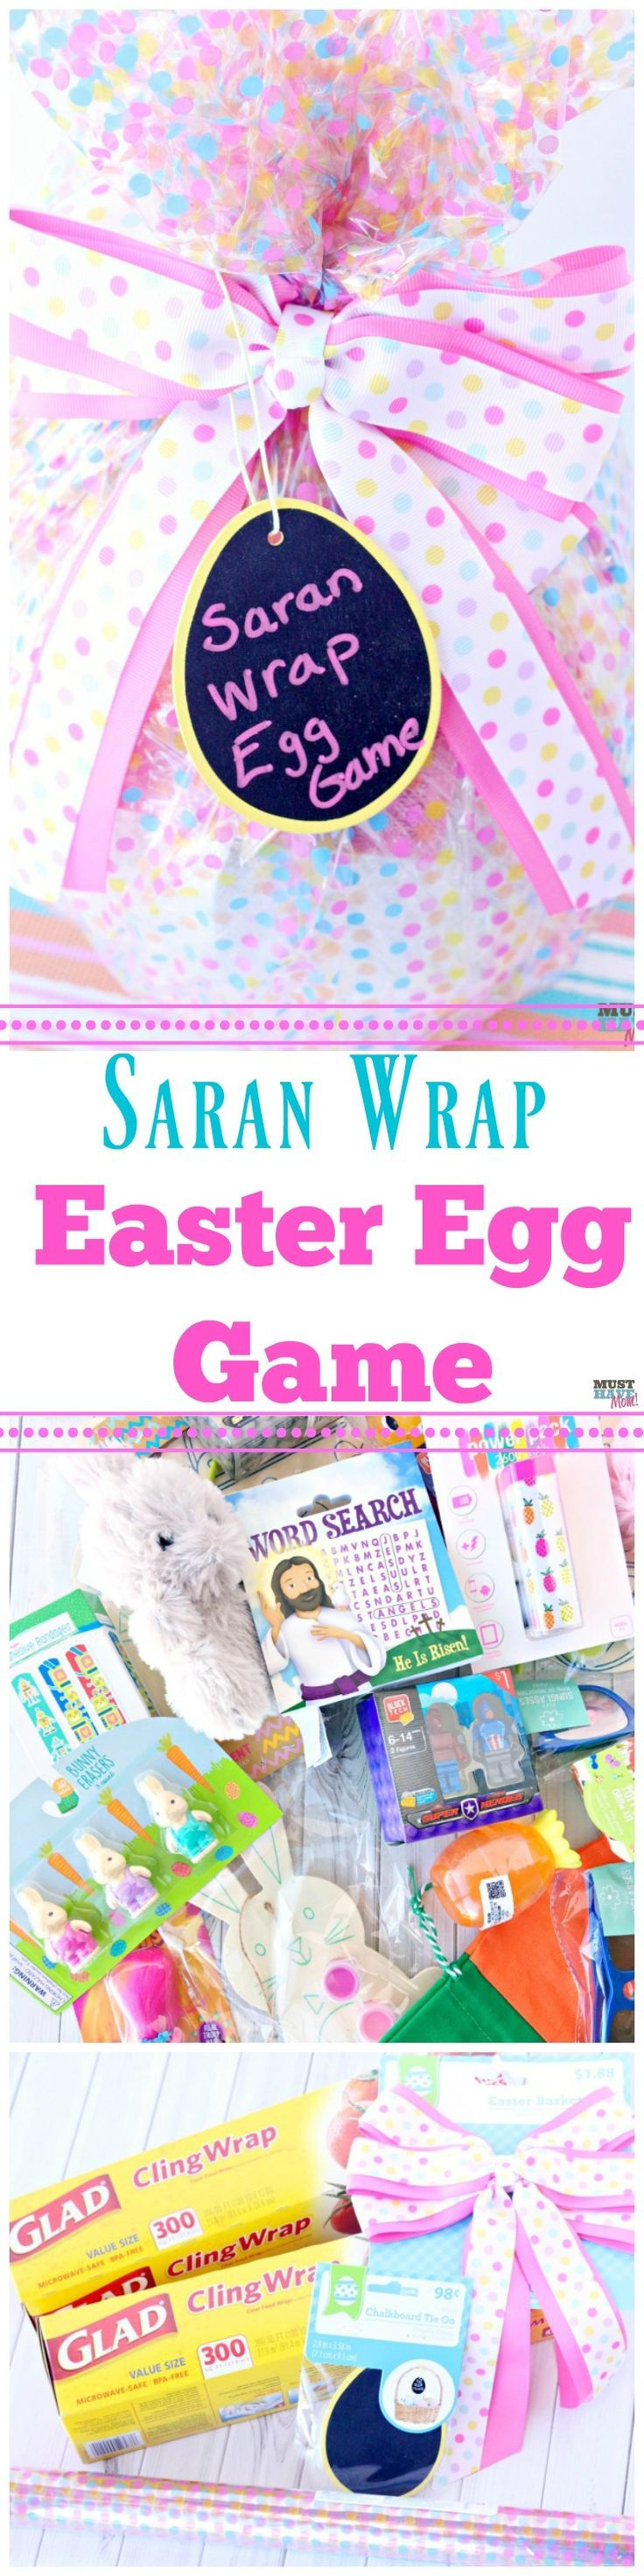 Easter egg saran wrap game idea! Start a new Easter tradition with this spin on the popular saran wrap ball game!